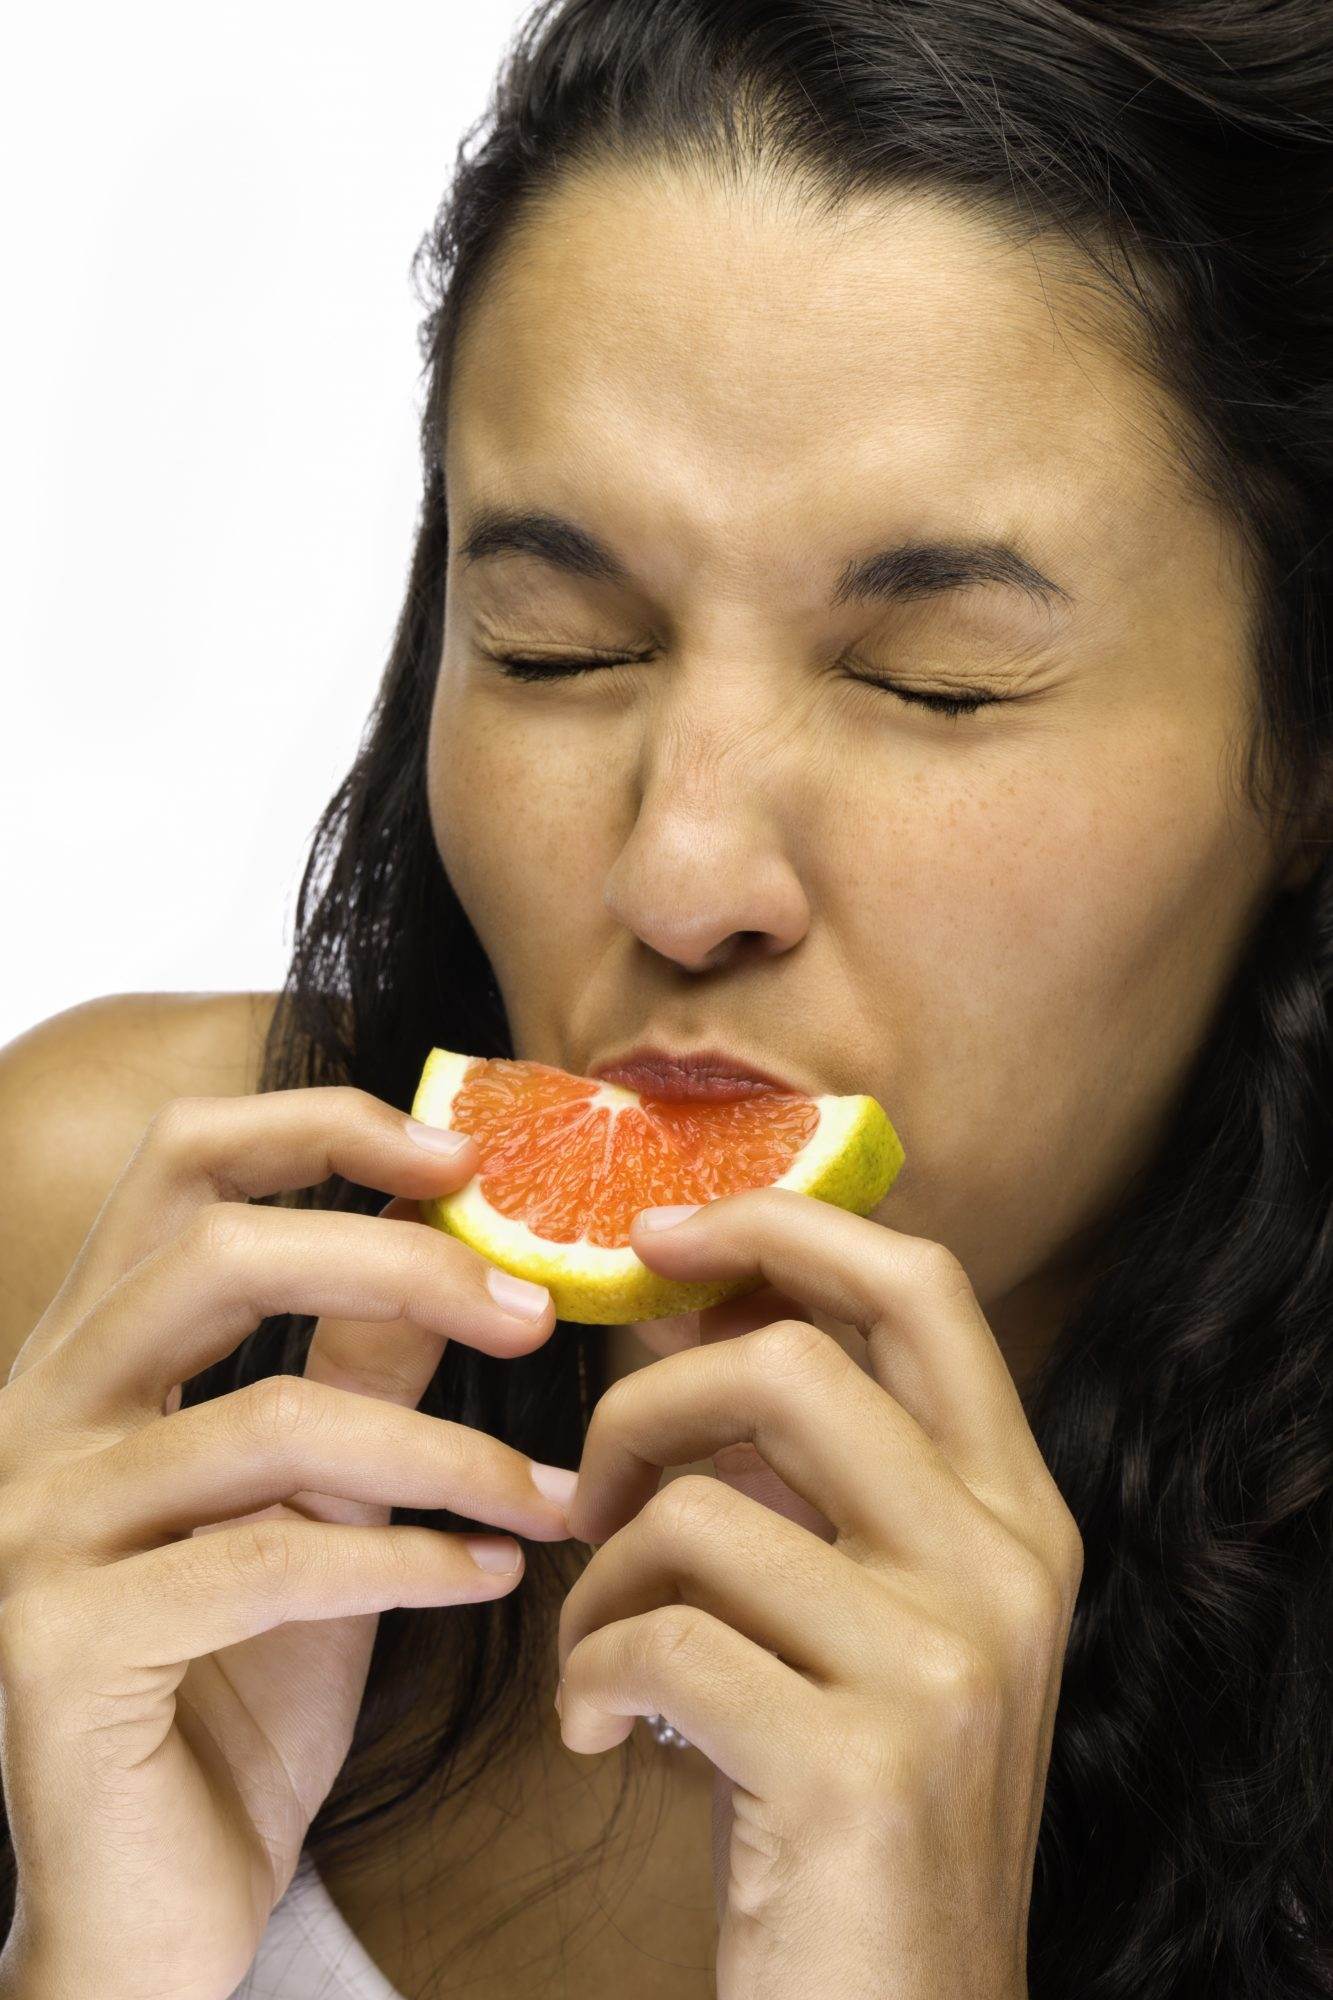 Grapefruit can aggravate canker sores